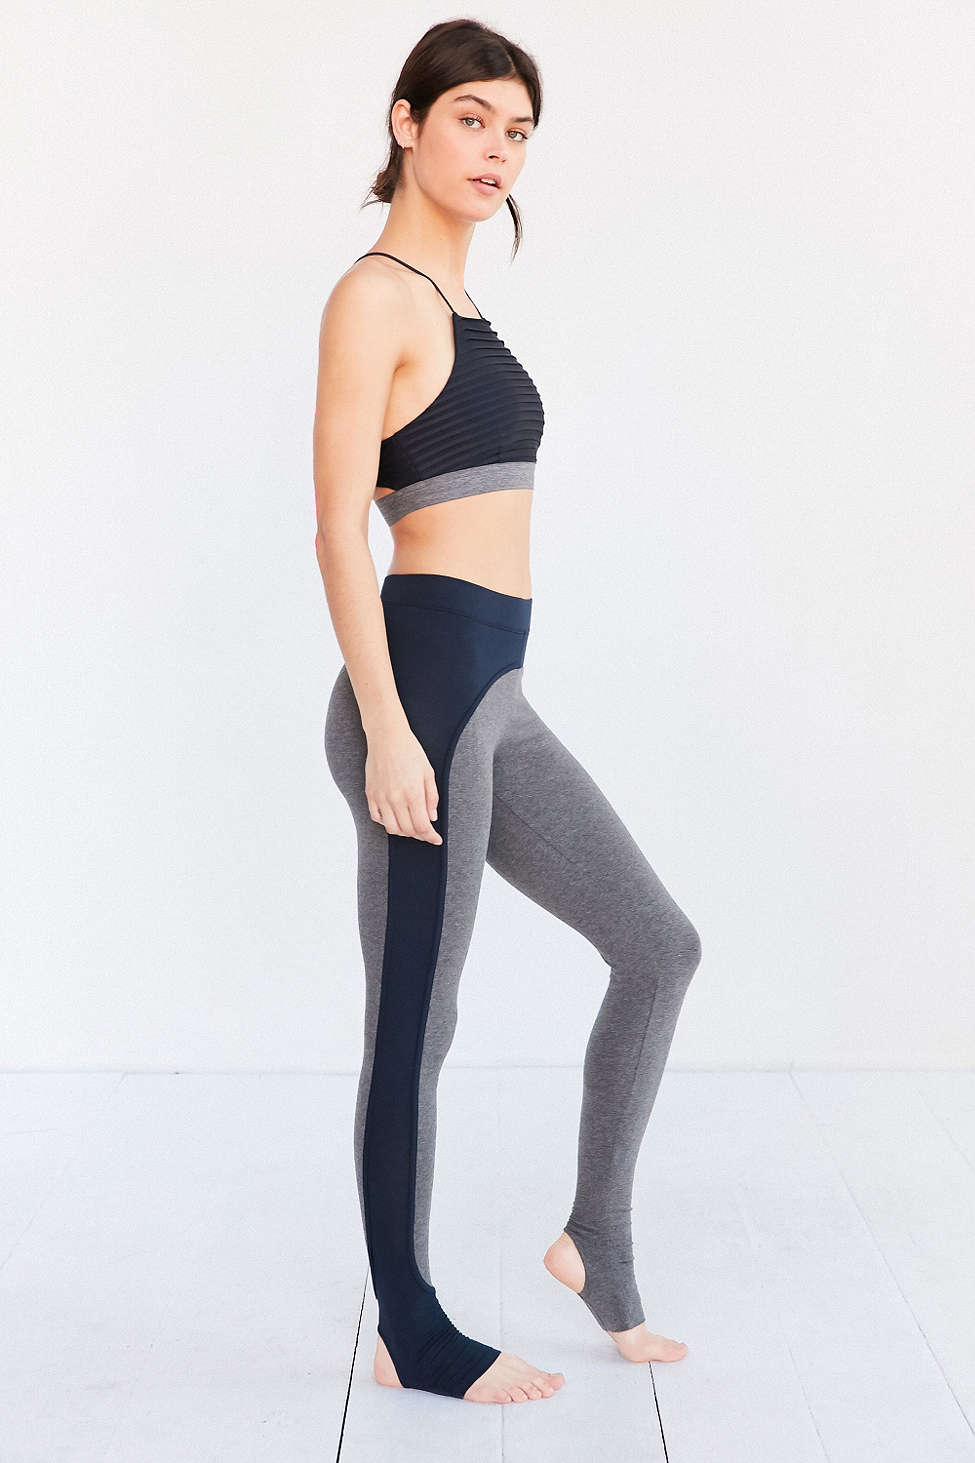 07502a167ca395 Stirrup Pants: The 80s Trend Making a Big Comeback - theFashionSpot